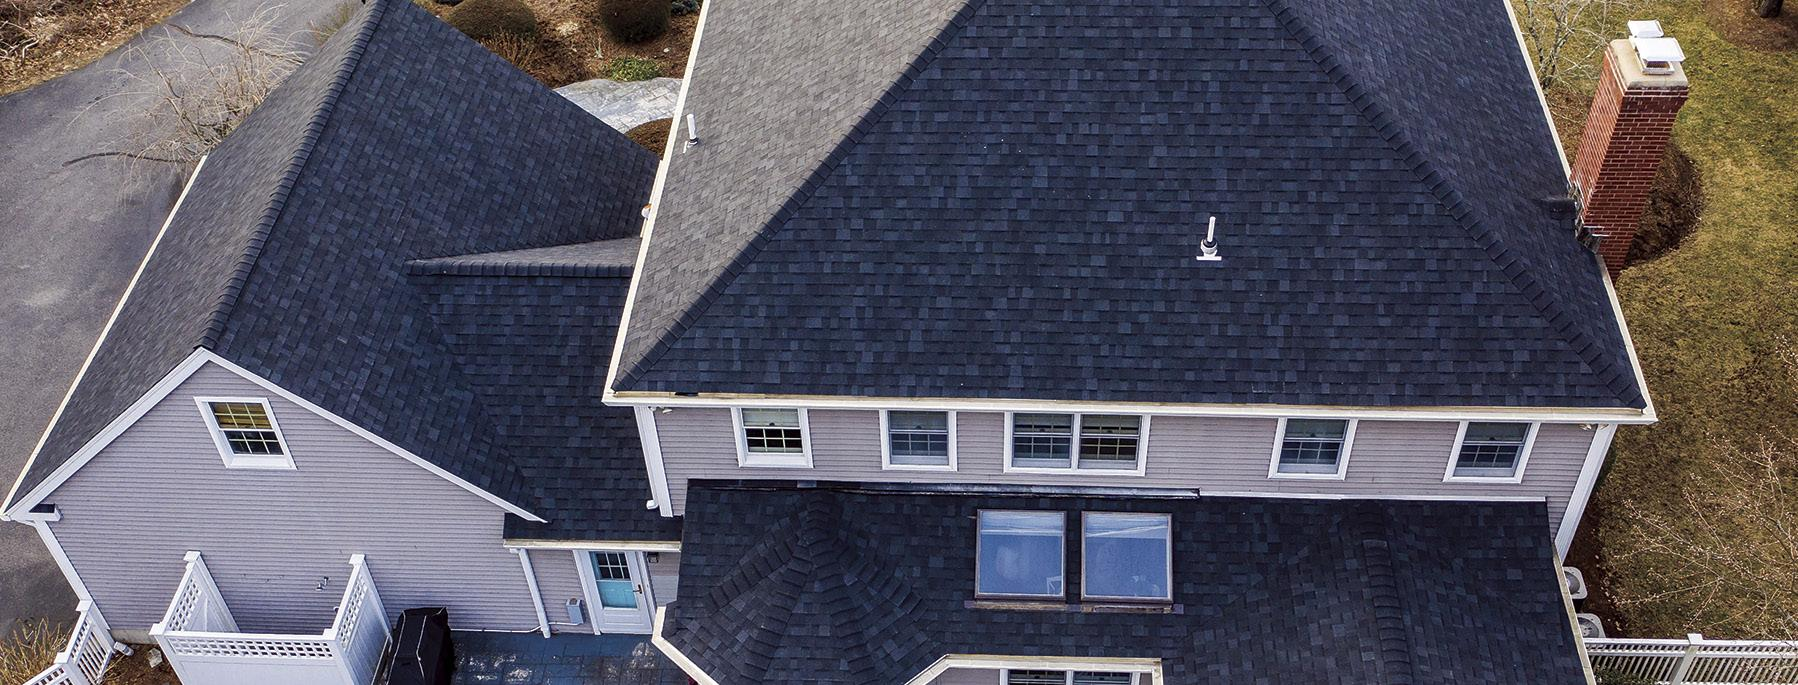 Page 16 of Roofing in a new era